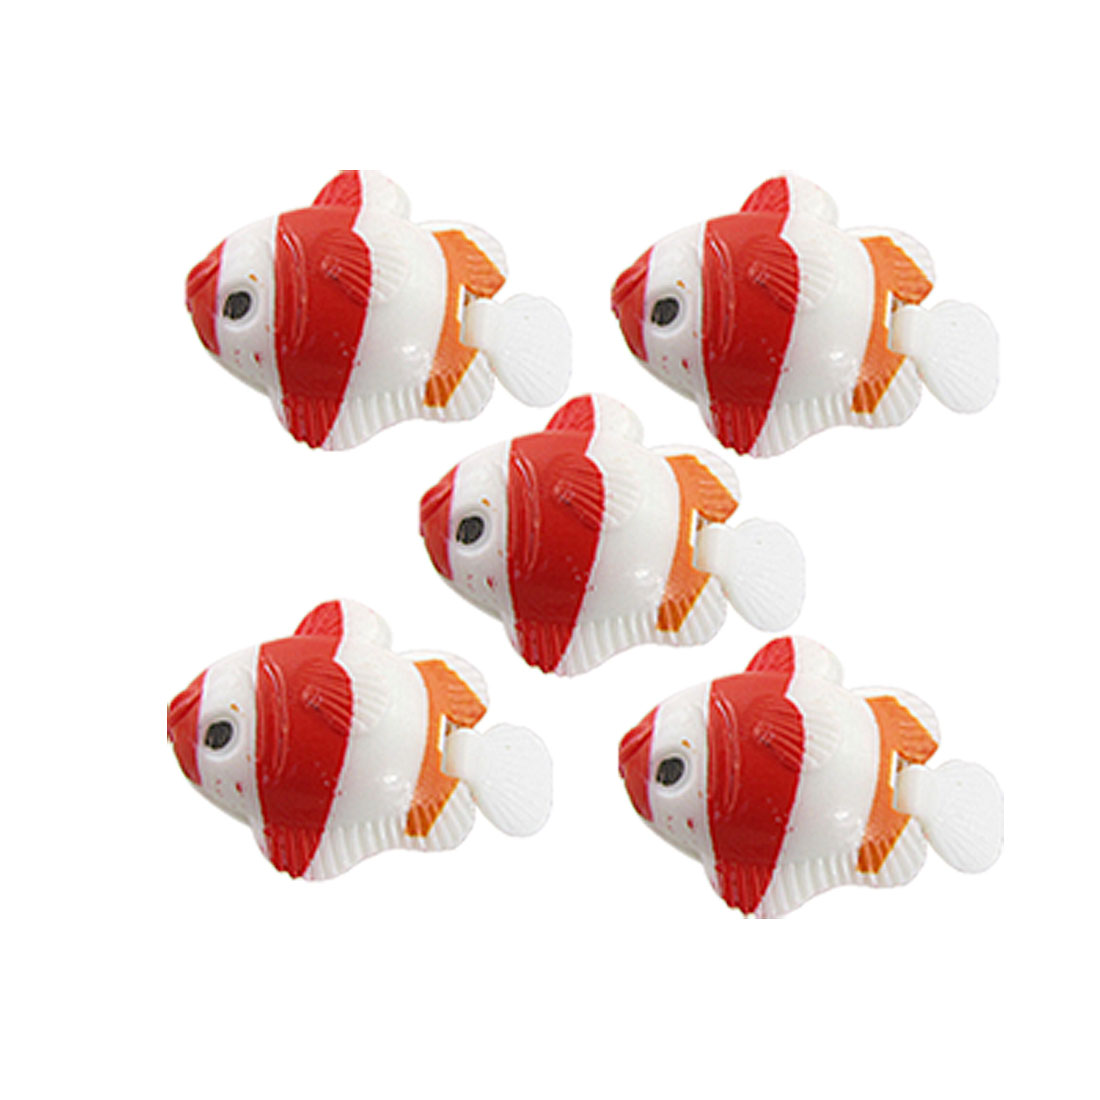 5 PCS Aquarium Plastic Floating Fish Tank Ornamental Fish